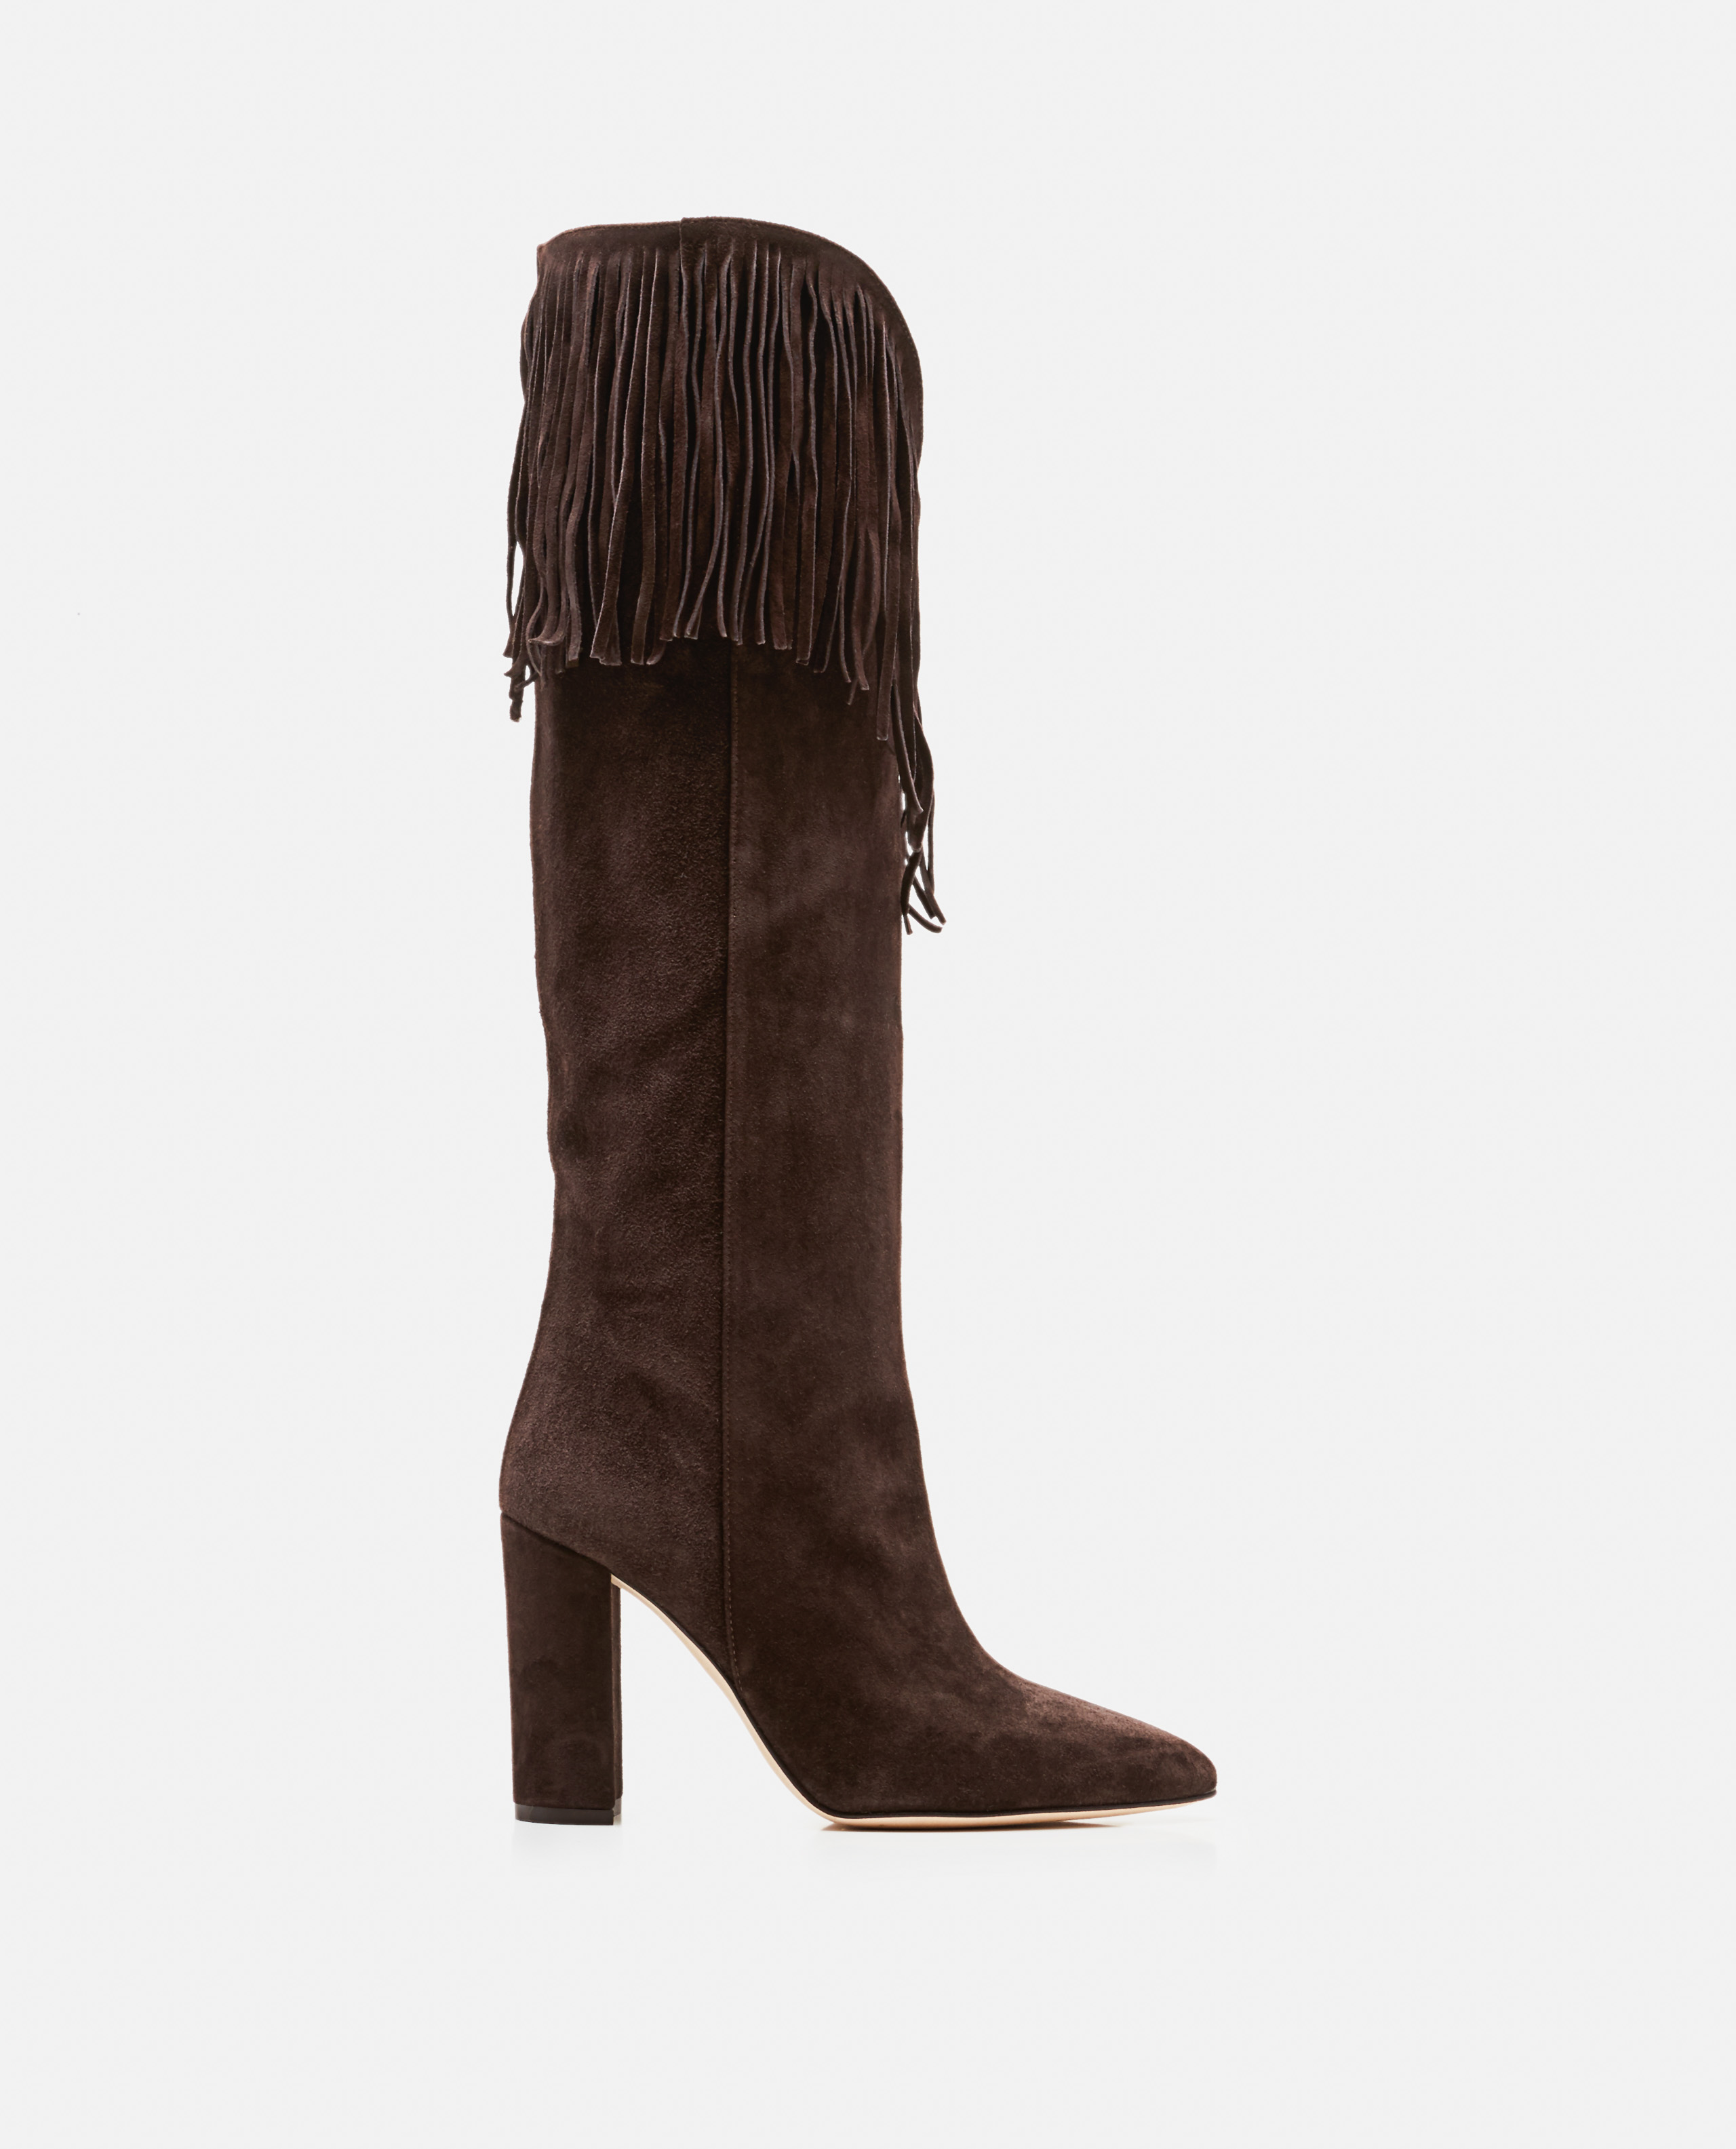 Image of Boot with fringe